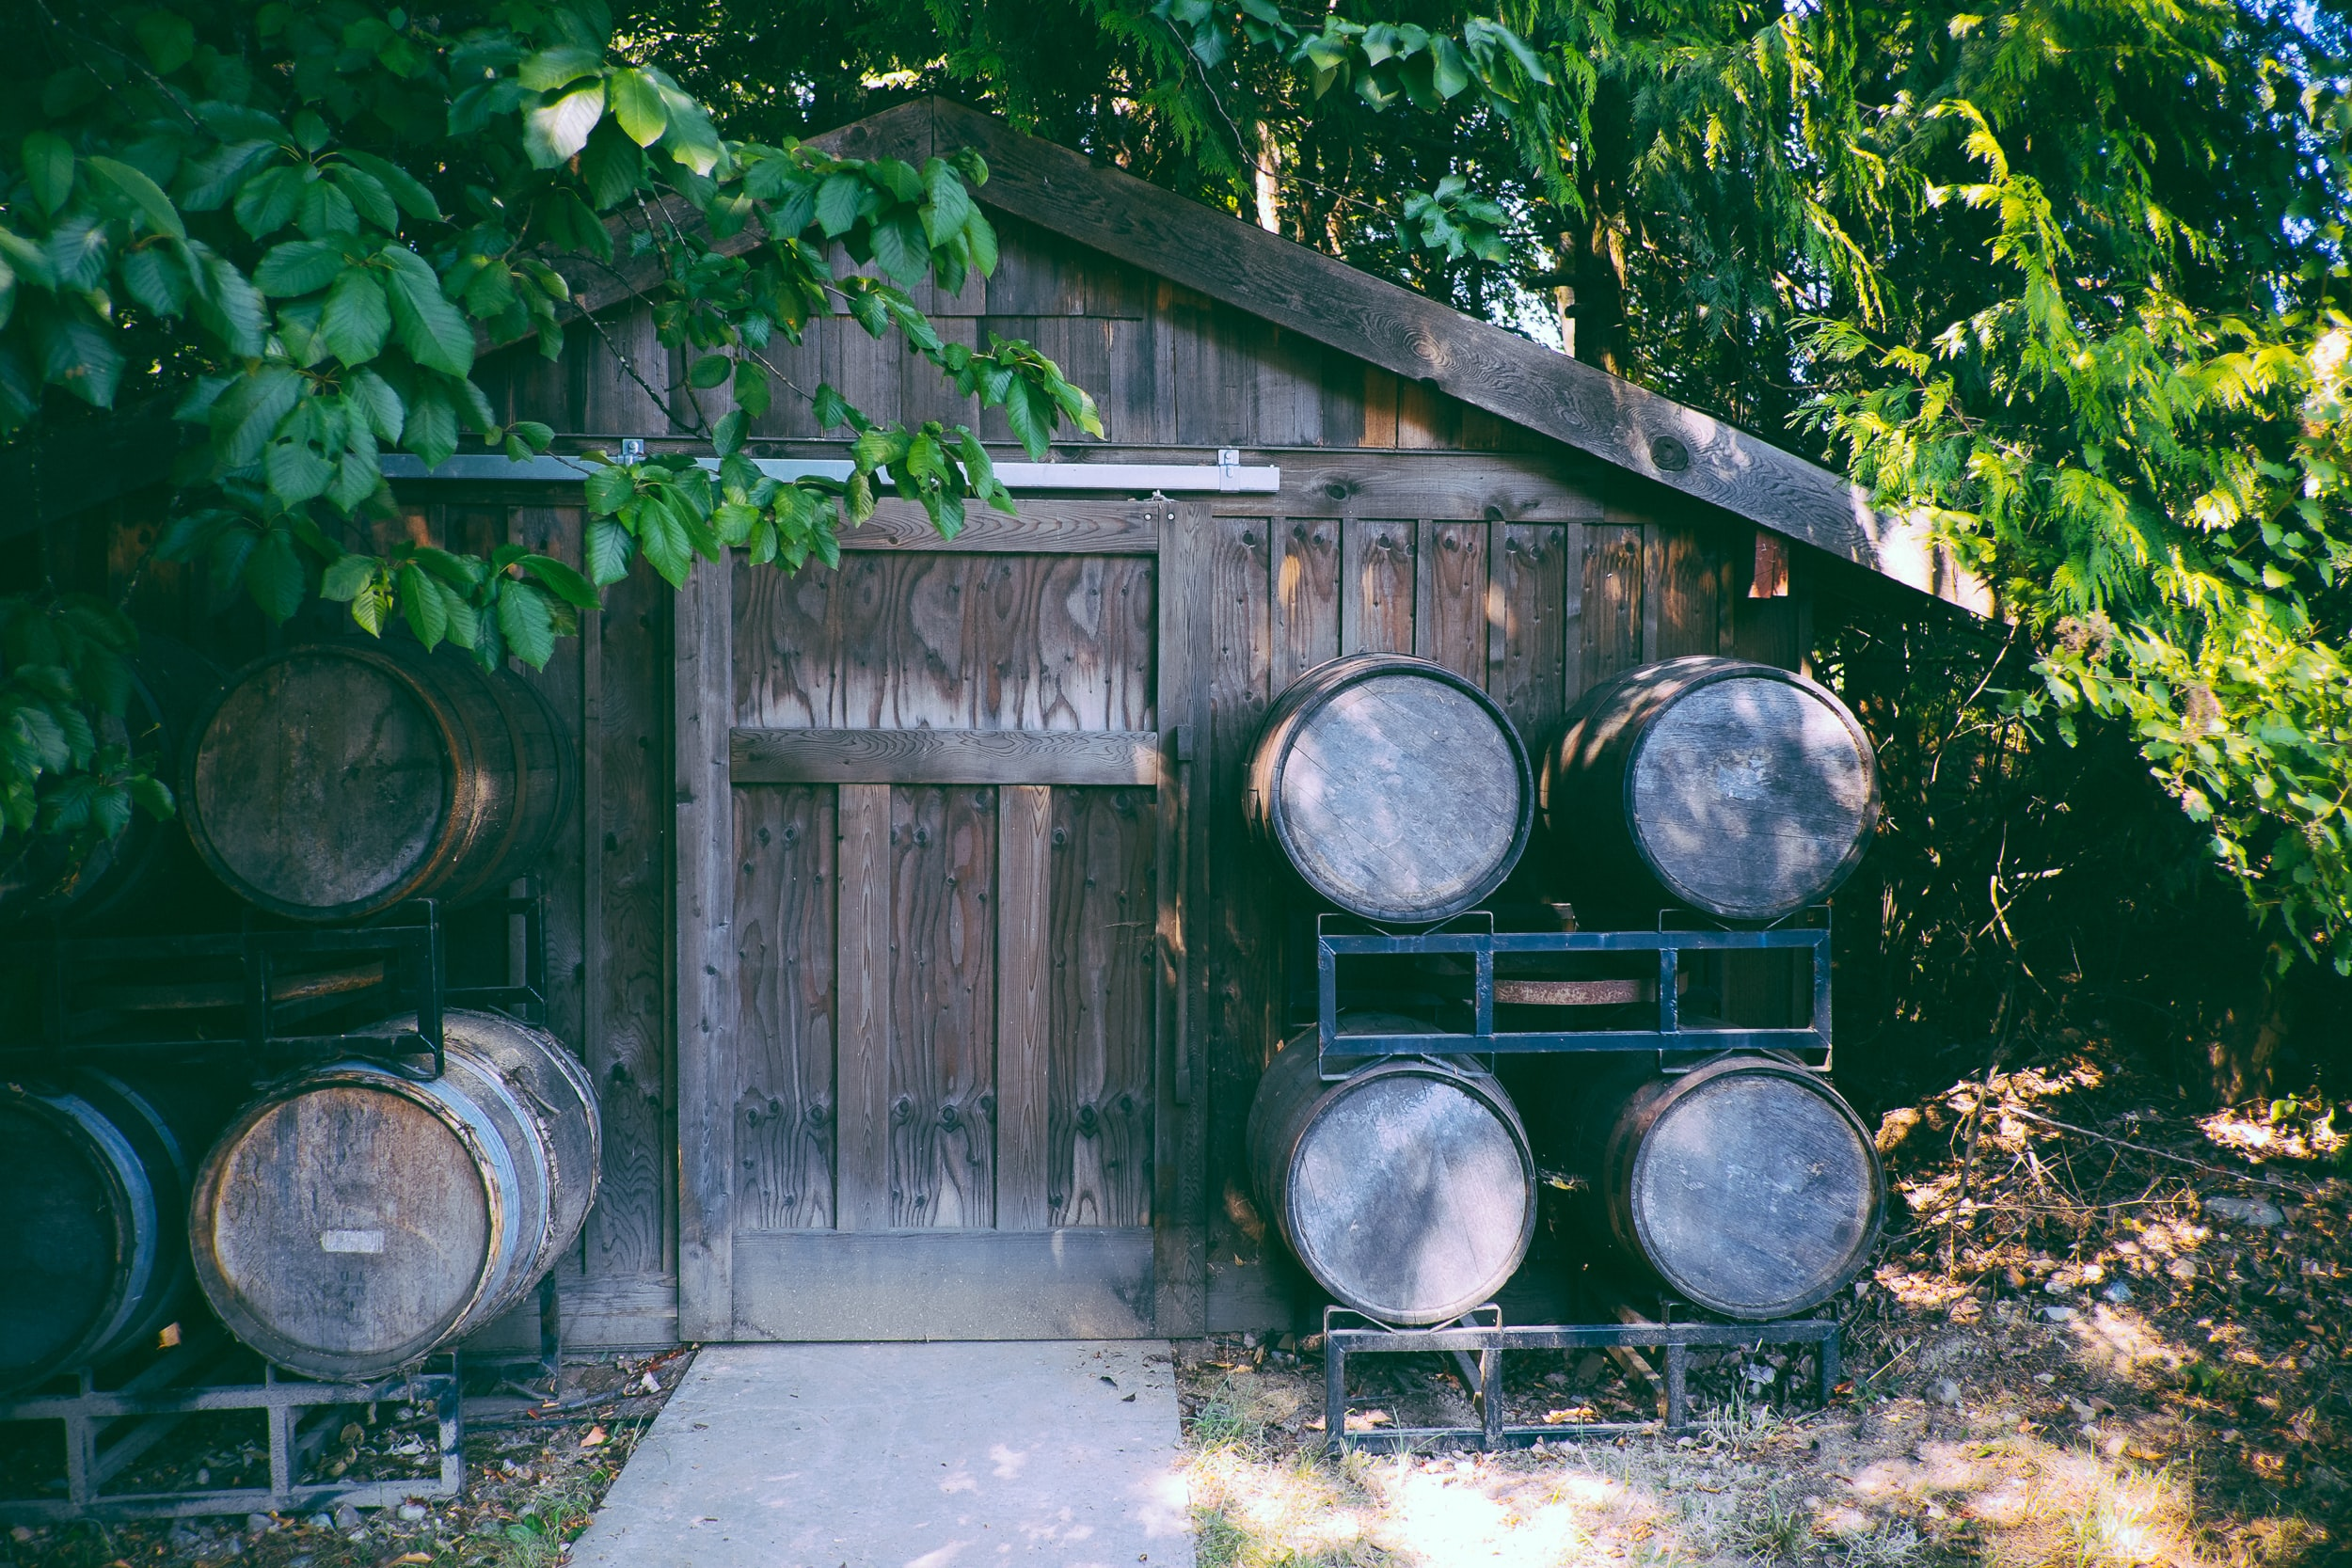 A wooden cabin surrounded by trees, with shelves of wooden barrels